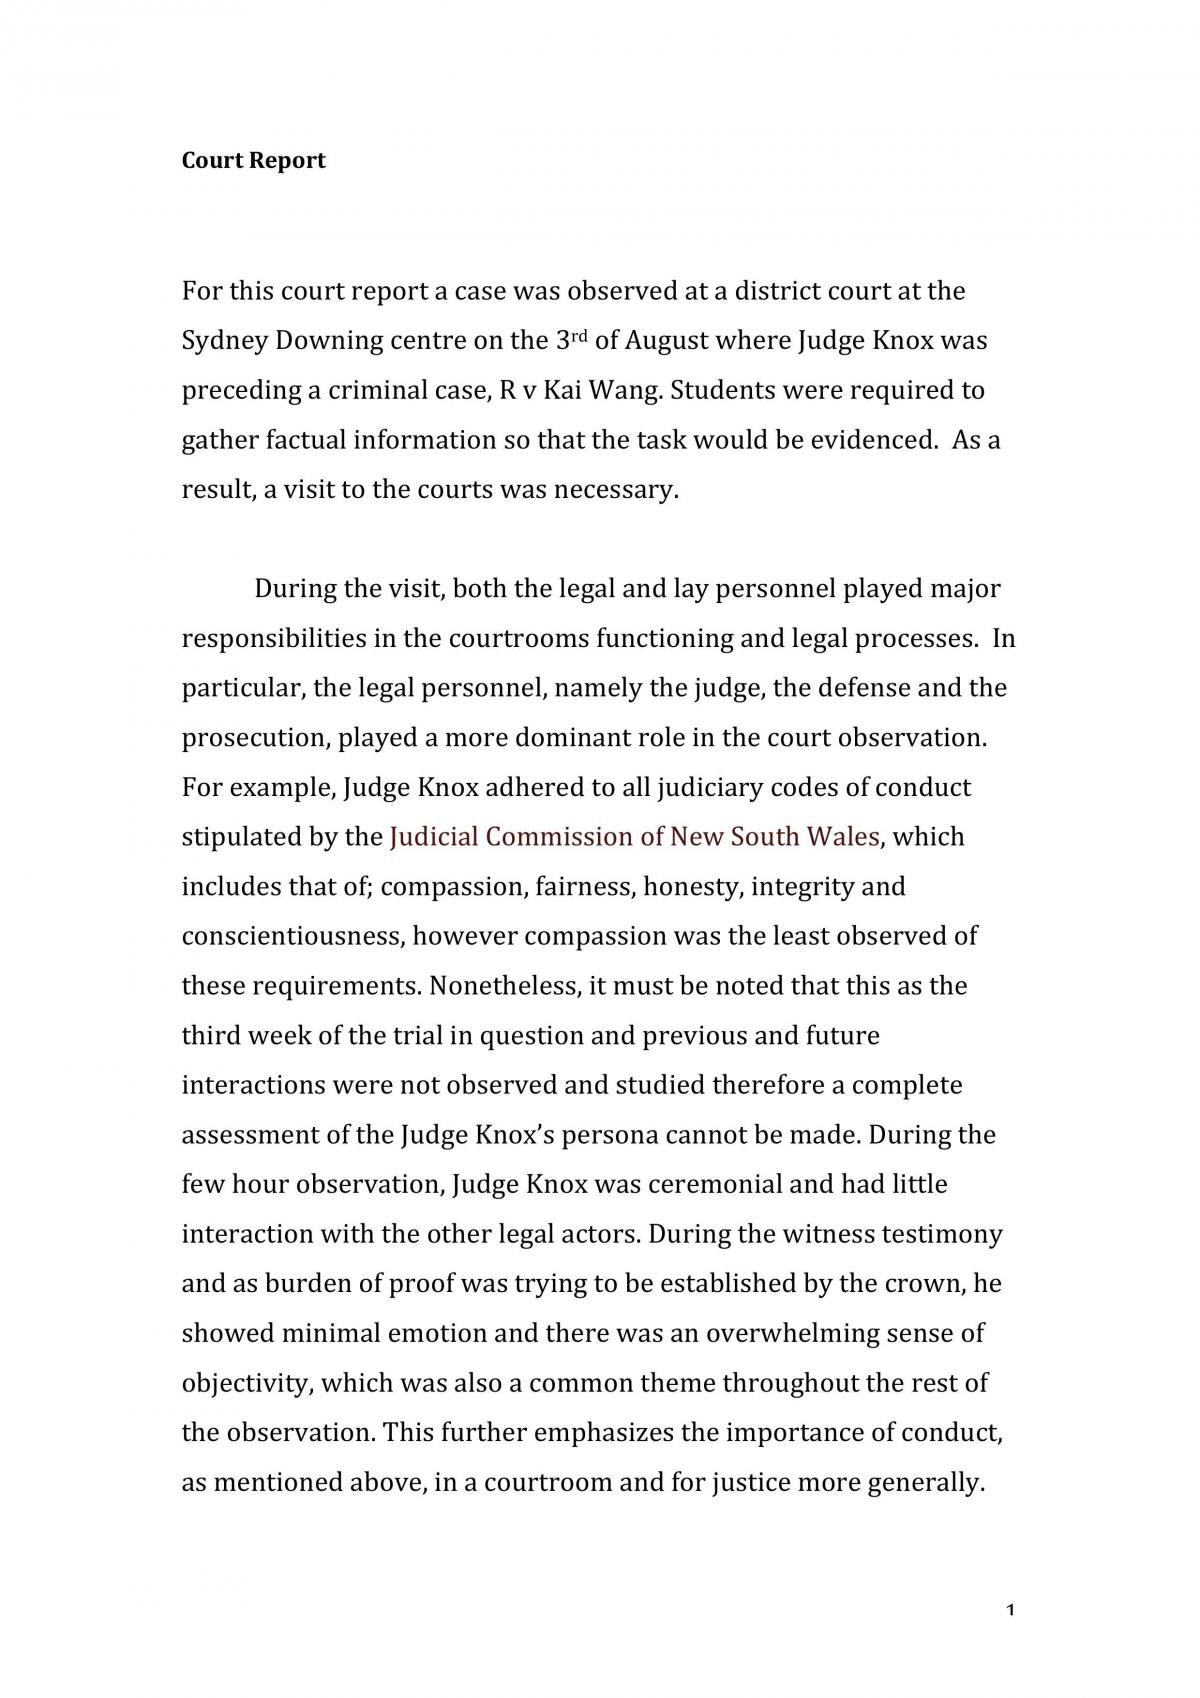 Court Report  - Page 1